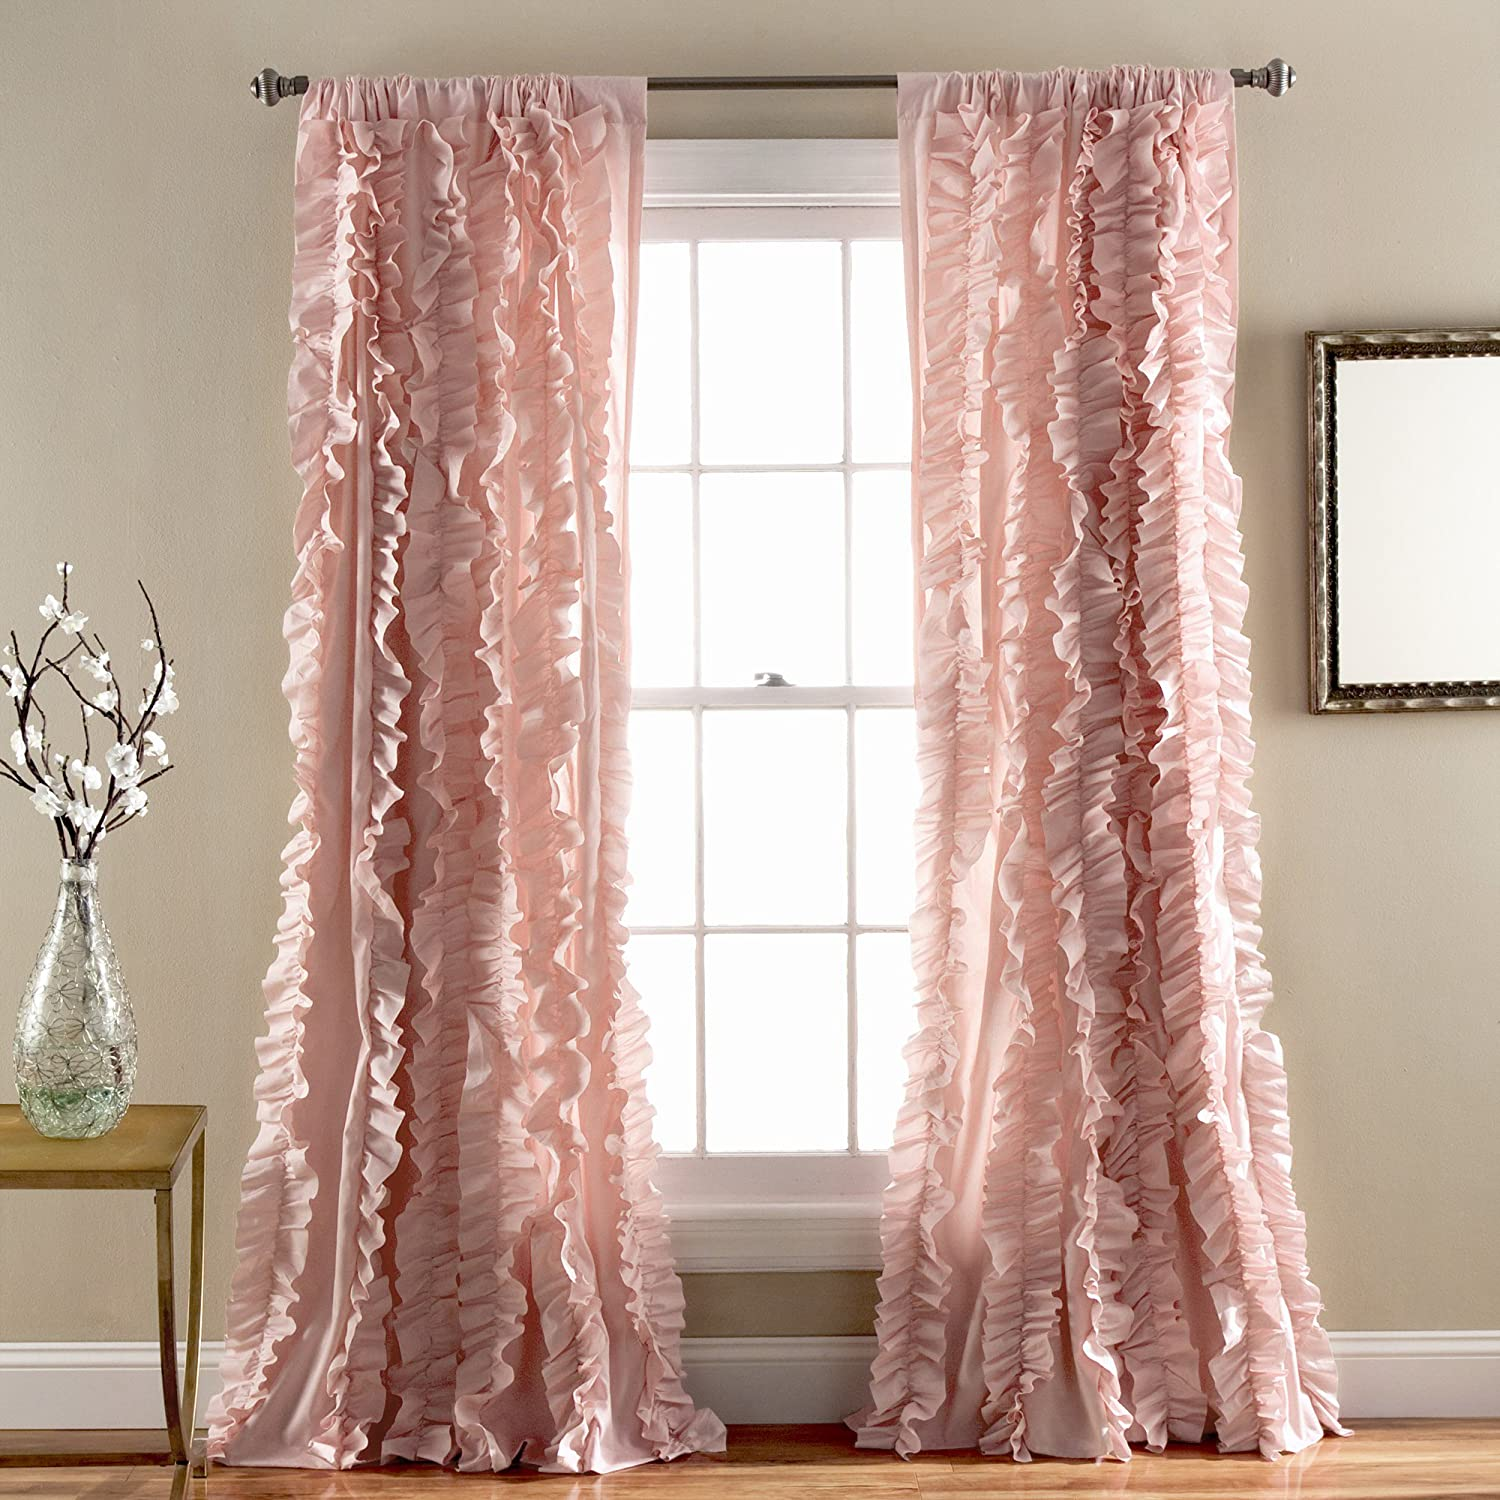 window decoration for curved beautiful curtain kmart using rods depot home blackout curtains pretty ideas maroon at extended ikea magnetic rod single